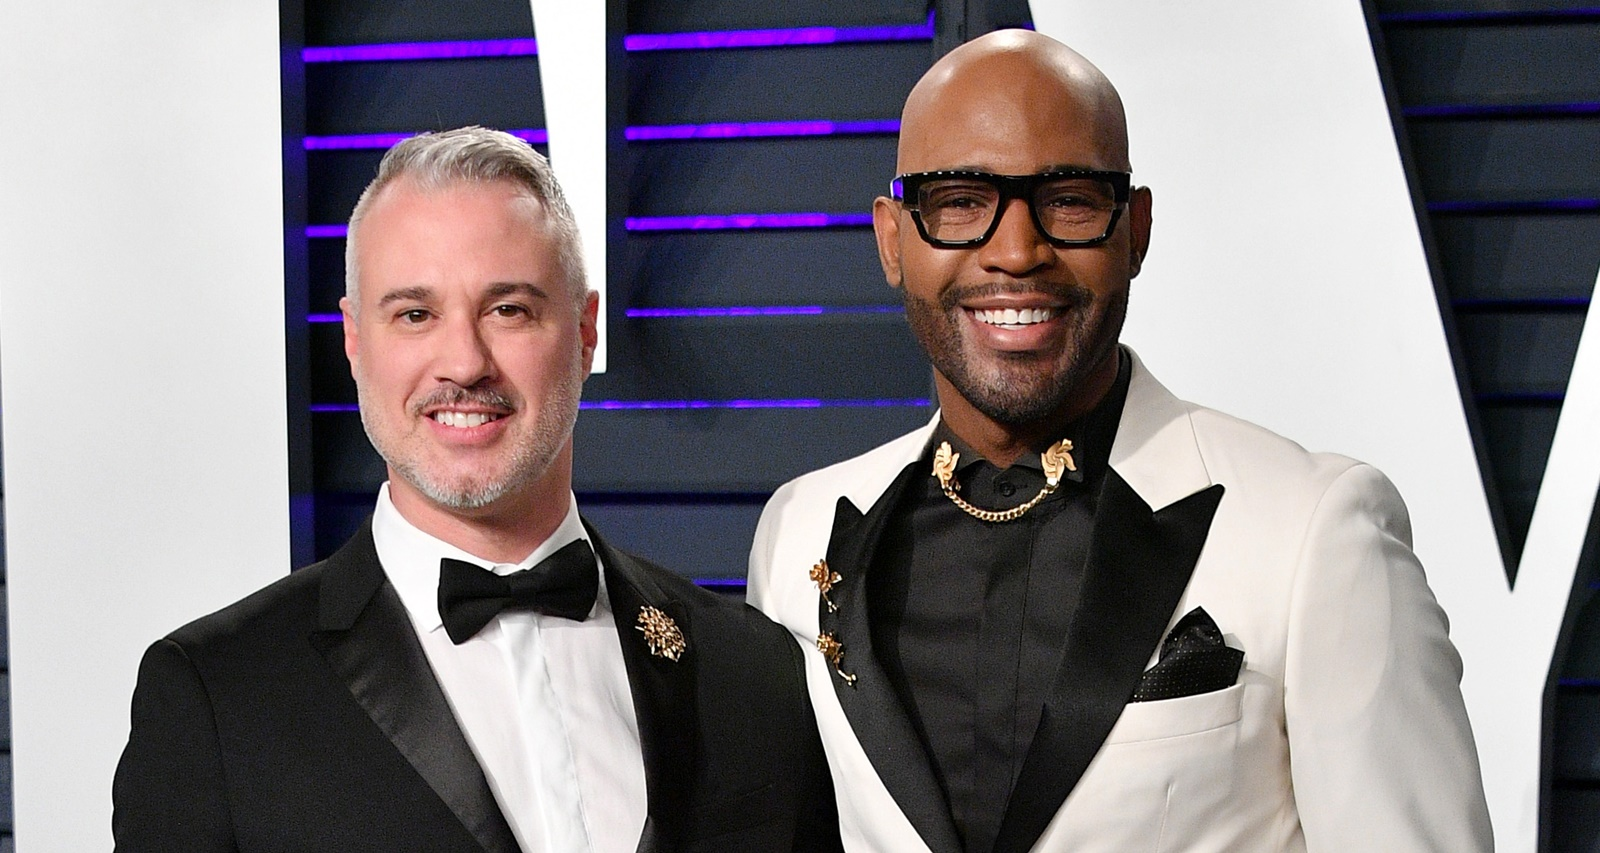 Ian Jordan Wiki: Facts About Karamo Brown's Fiancé